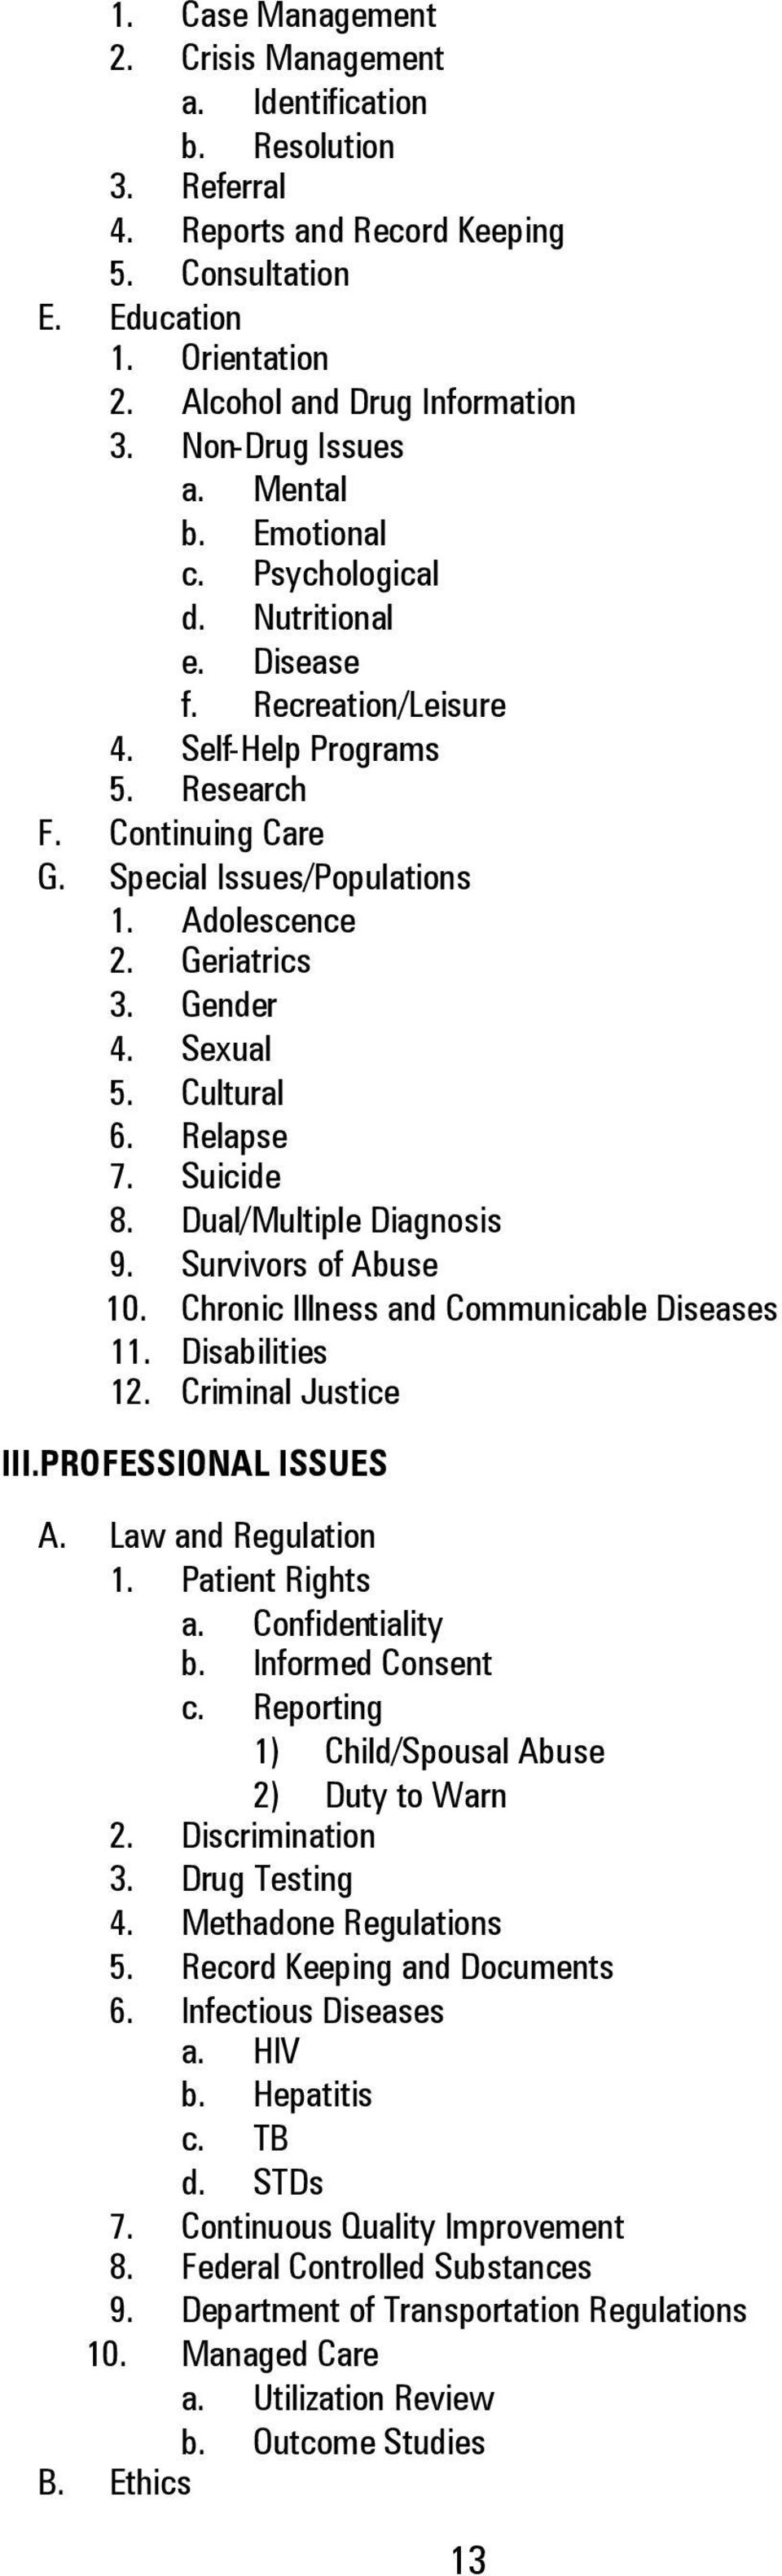 Adolescence 2. Geriatrics 3. Gender 4. Sexual 5. Cultural 6. Relapse 7. Suicide 8. Dual/Multiple Diagnosis 9. Survivors of Abuse 10. Chronic Illness and Communicable Diseases 11. Disabilities 12.